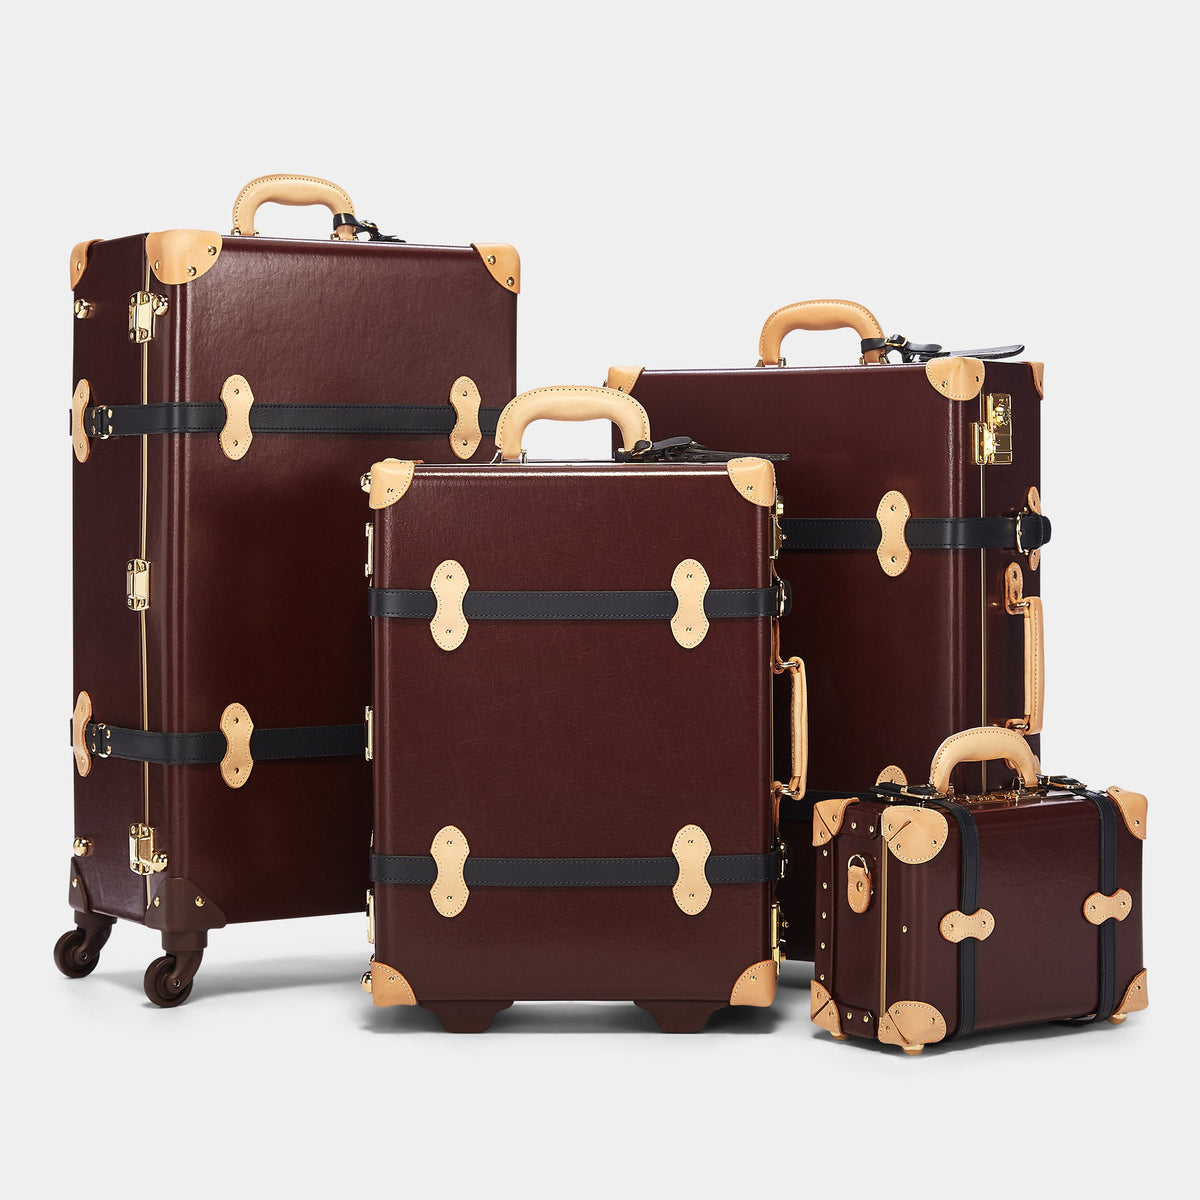 The Architect Carryon in Burgundy - Vintage Style Leather Case - Alongside matching cases from The Architect Burgundy collection